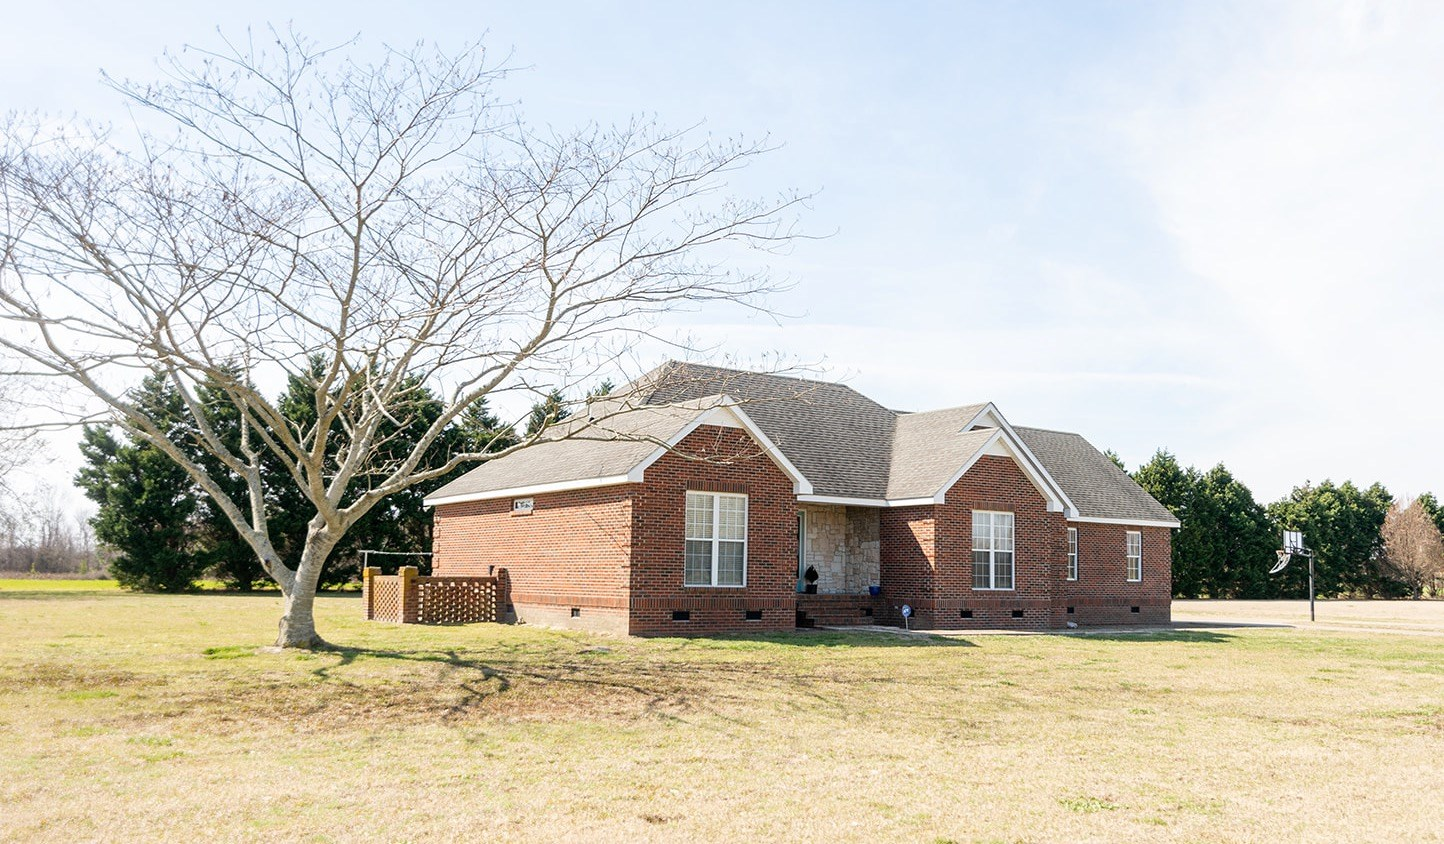 Custom Built Home in HEART OF CHOWAN COUNTY